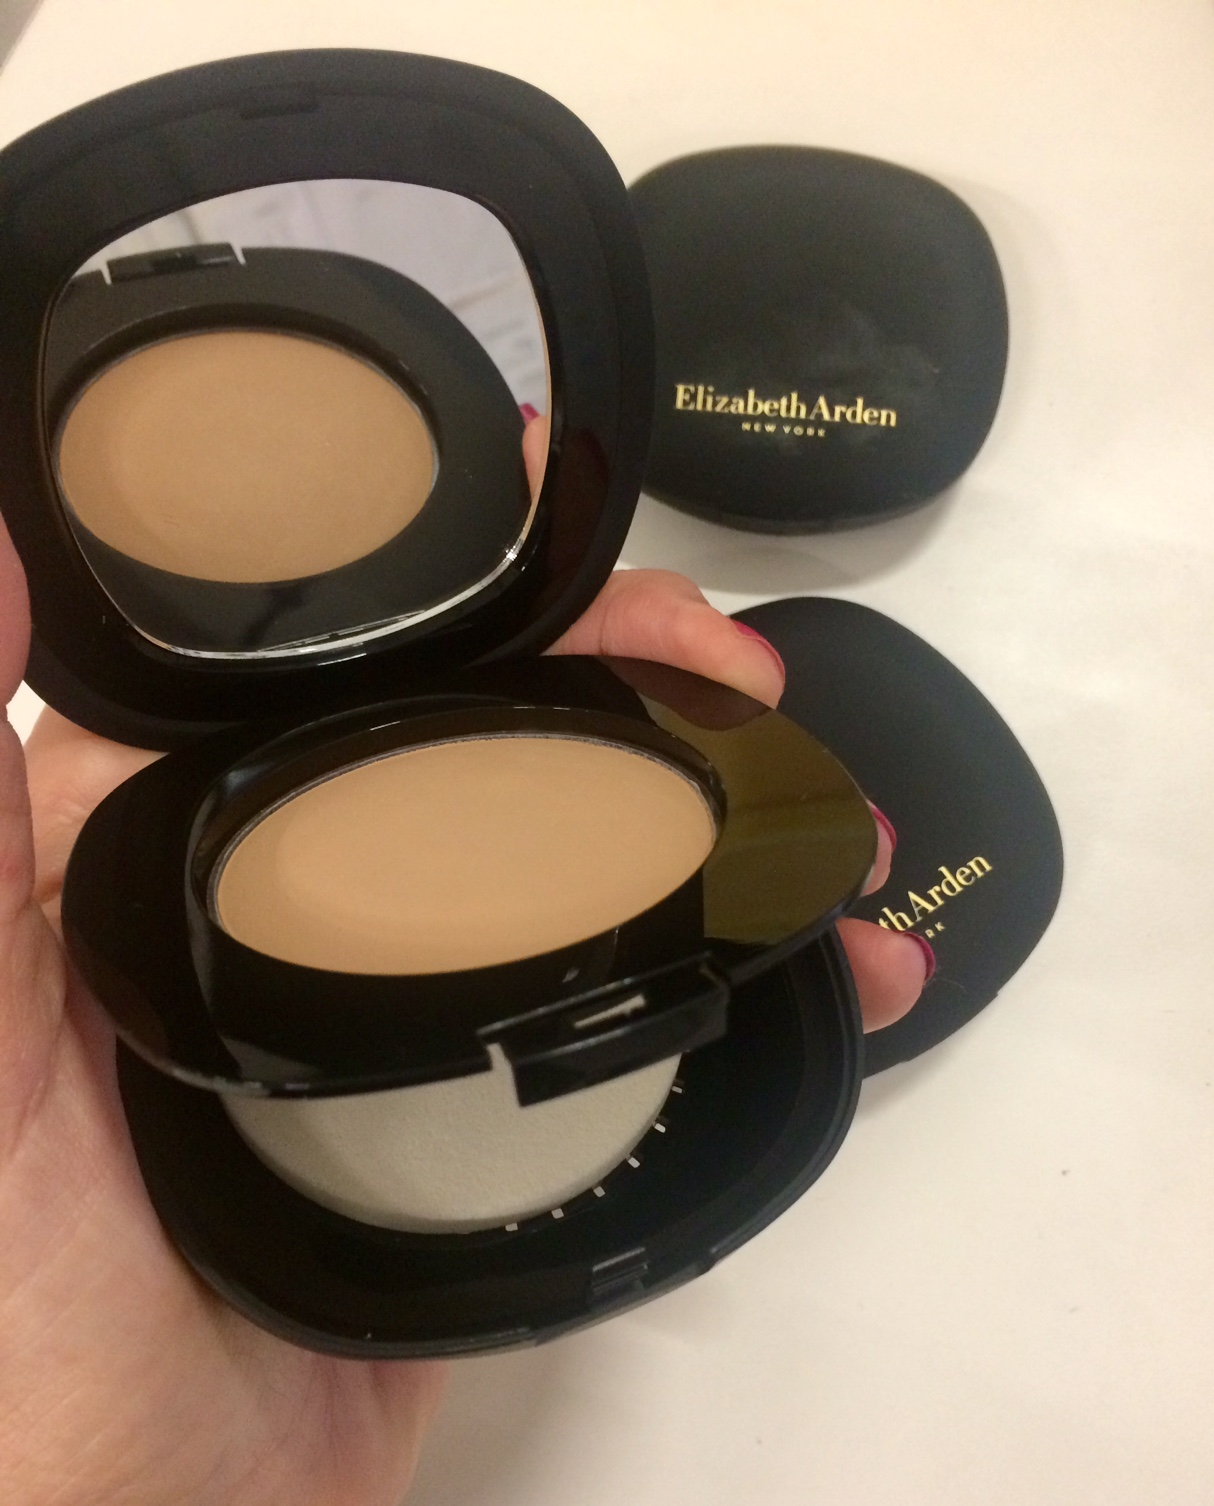 lawless Finish Everyday Perfection Bouncy Makeup